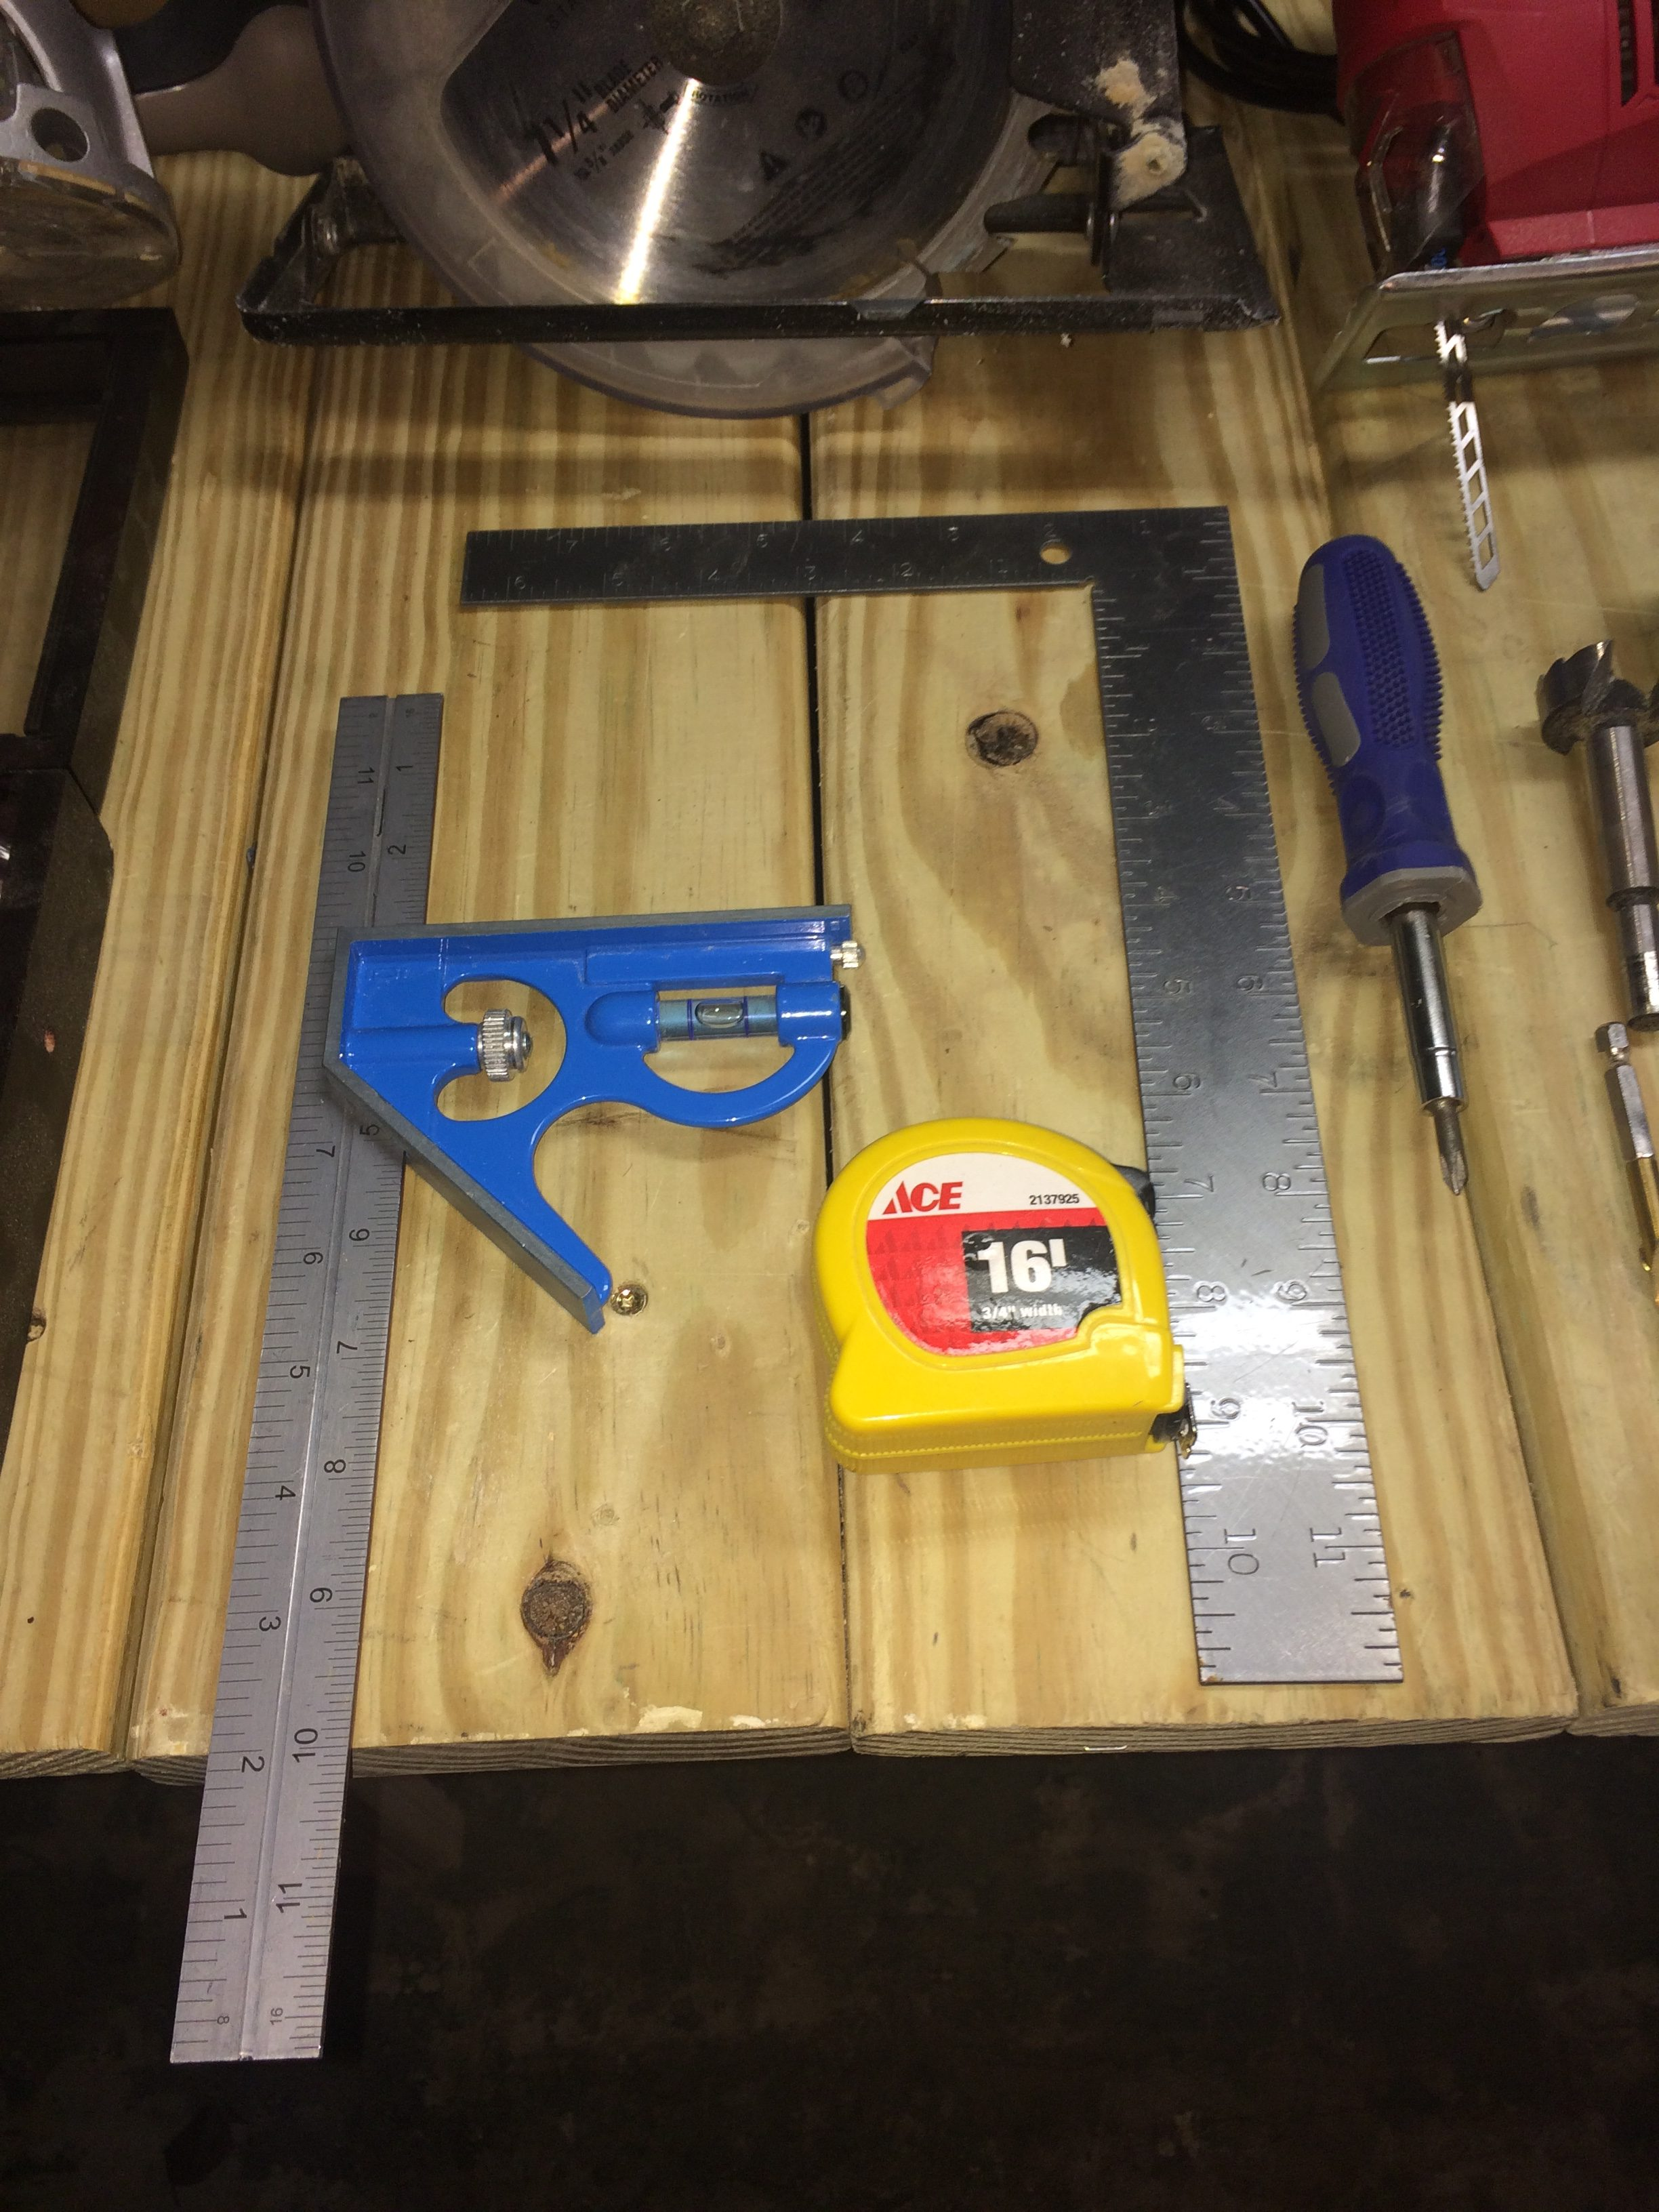 Adjustable Combination Try Square, Square Measure, and Tape Measure